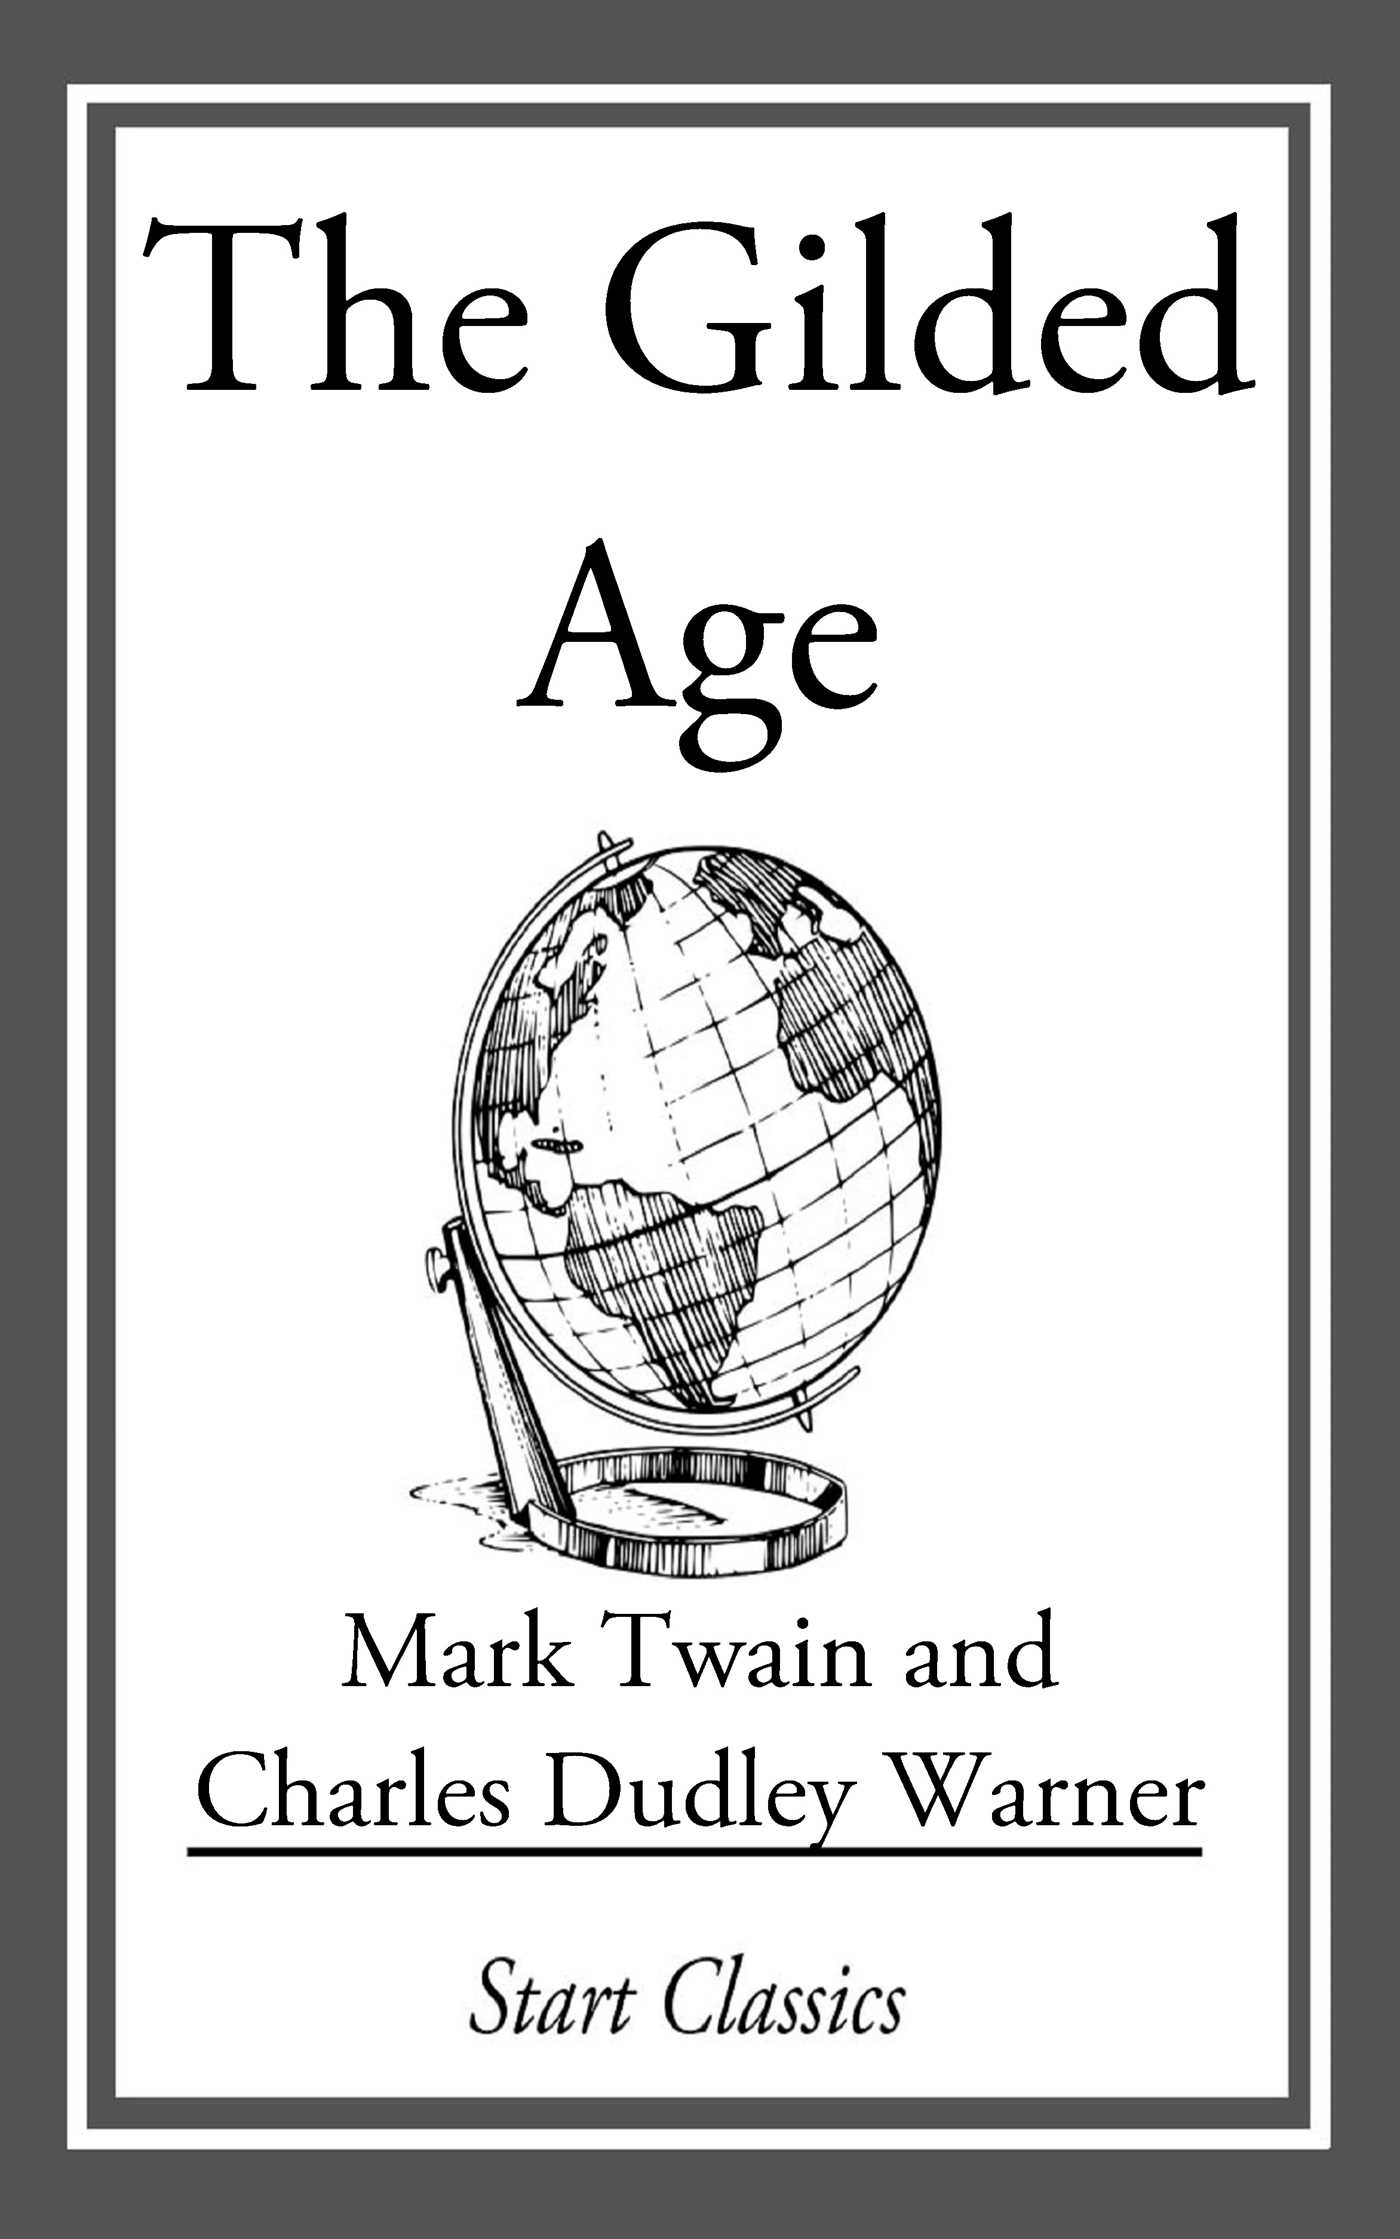 mark twains explanation of the gilded age and the life of native americans during this period Printable version overview of the gilded age digital history id 2916 mark twain called the late 19th century the gilded age by this, he meant that the period was glittering on the surface but corrupt underneath.